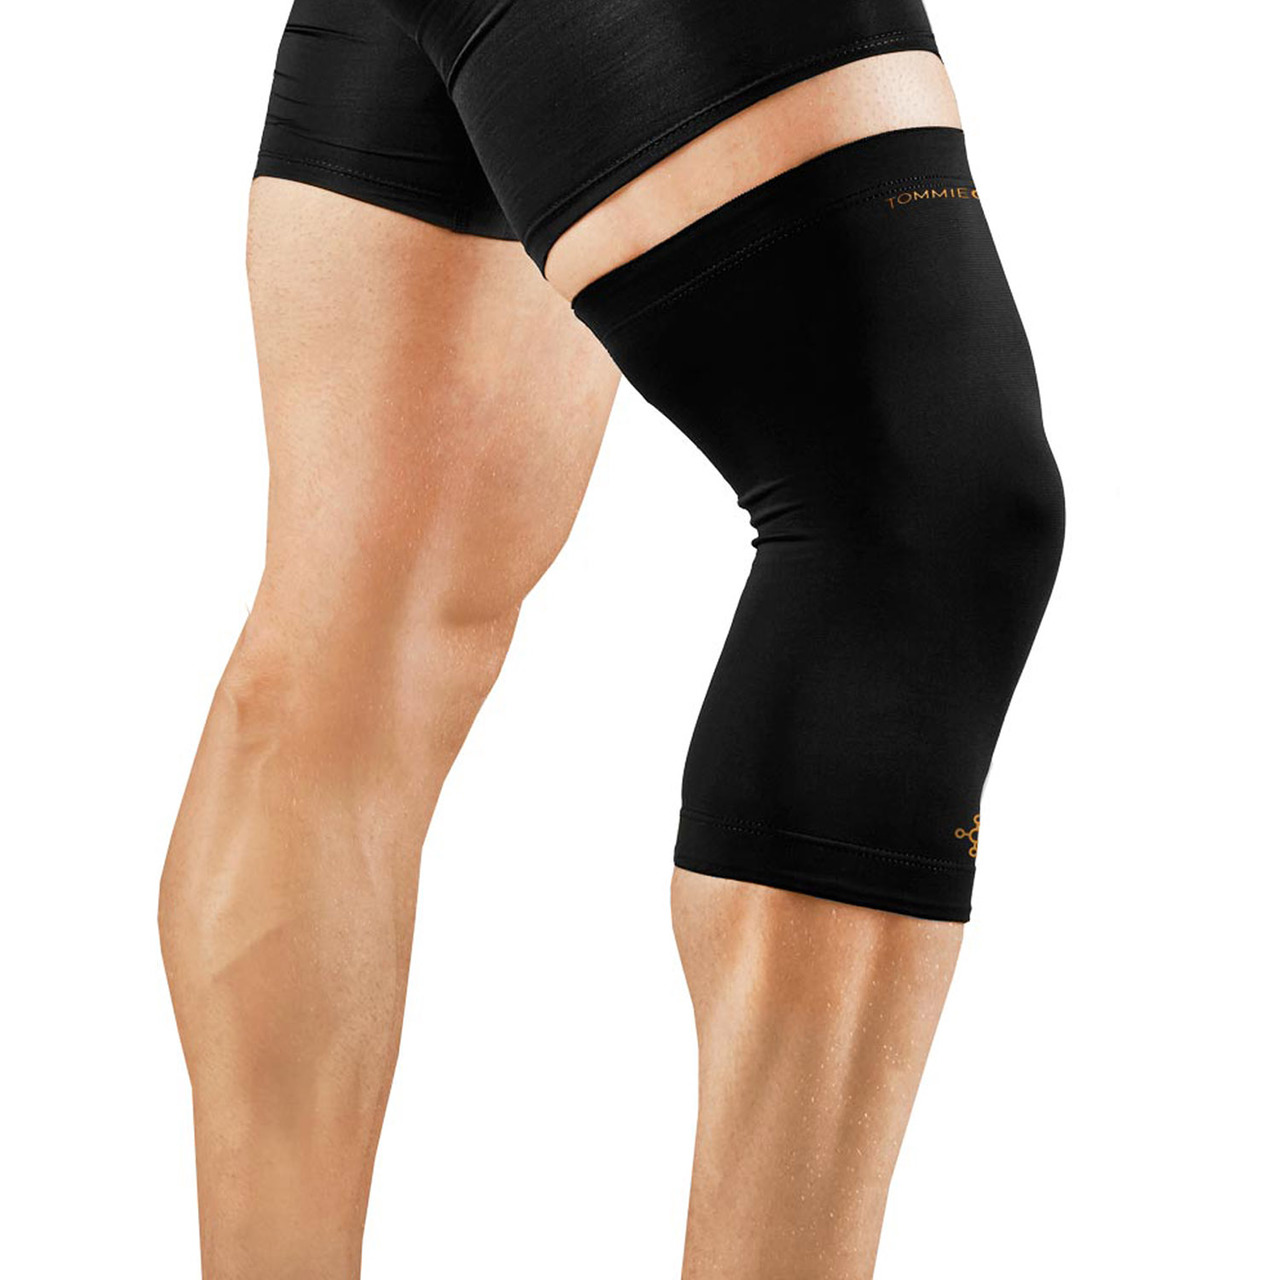 Tommie Copper Knee Compression Sleeve